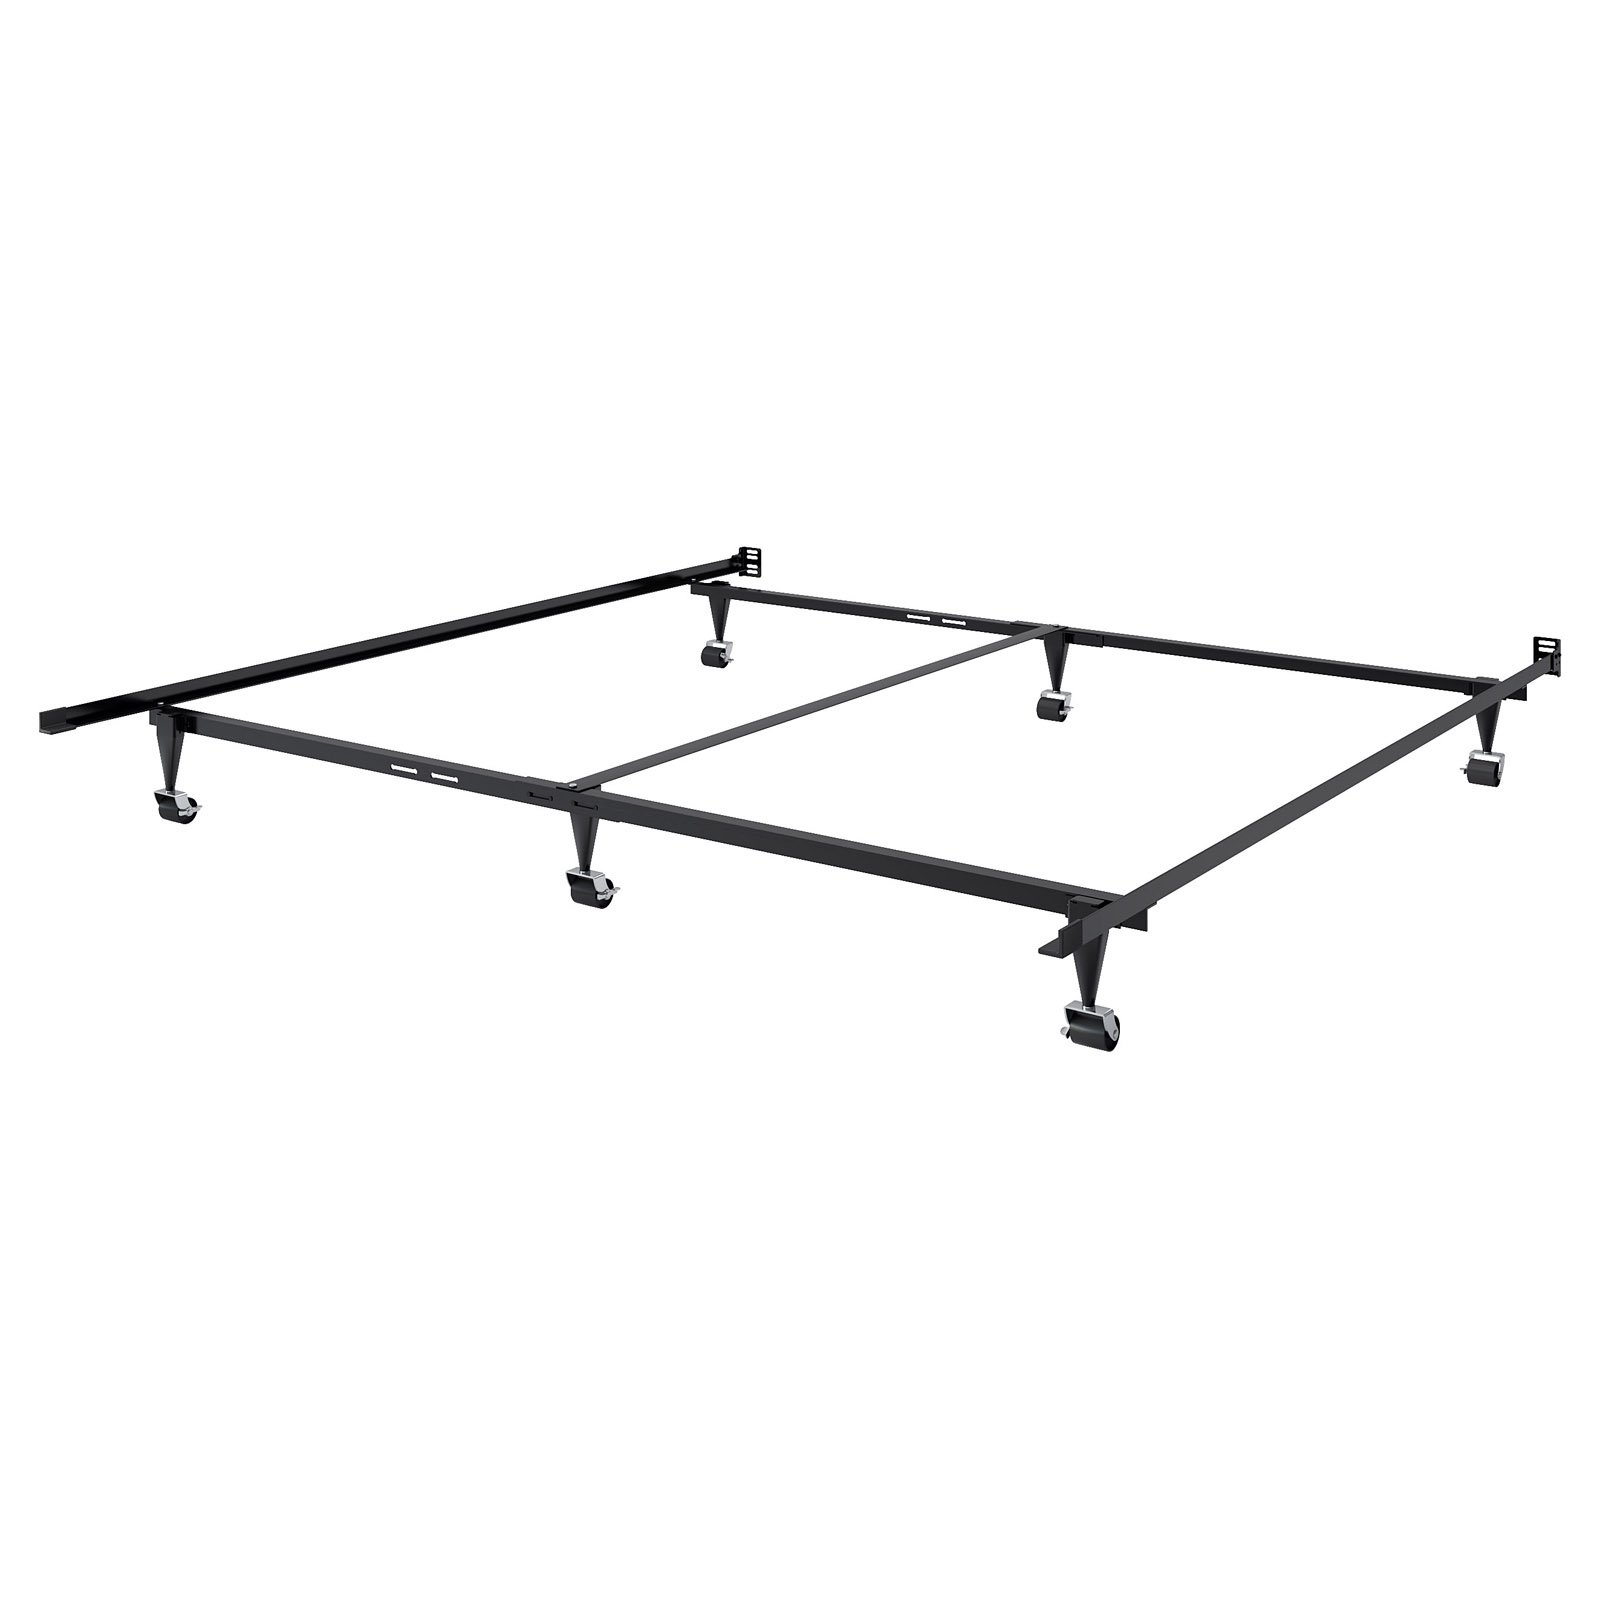 Adjustable Queen or King Metal Bed Frame   Walmart.com